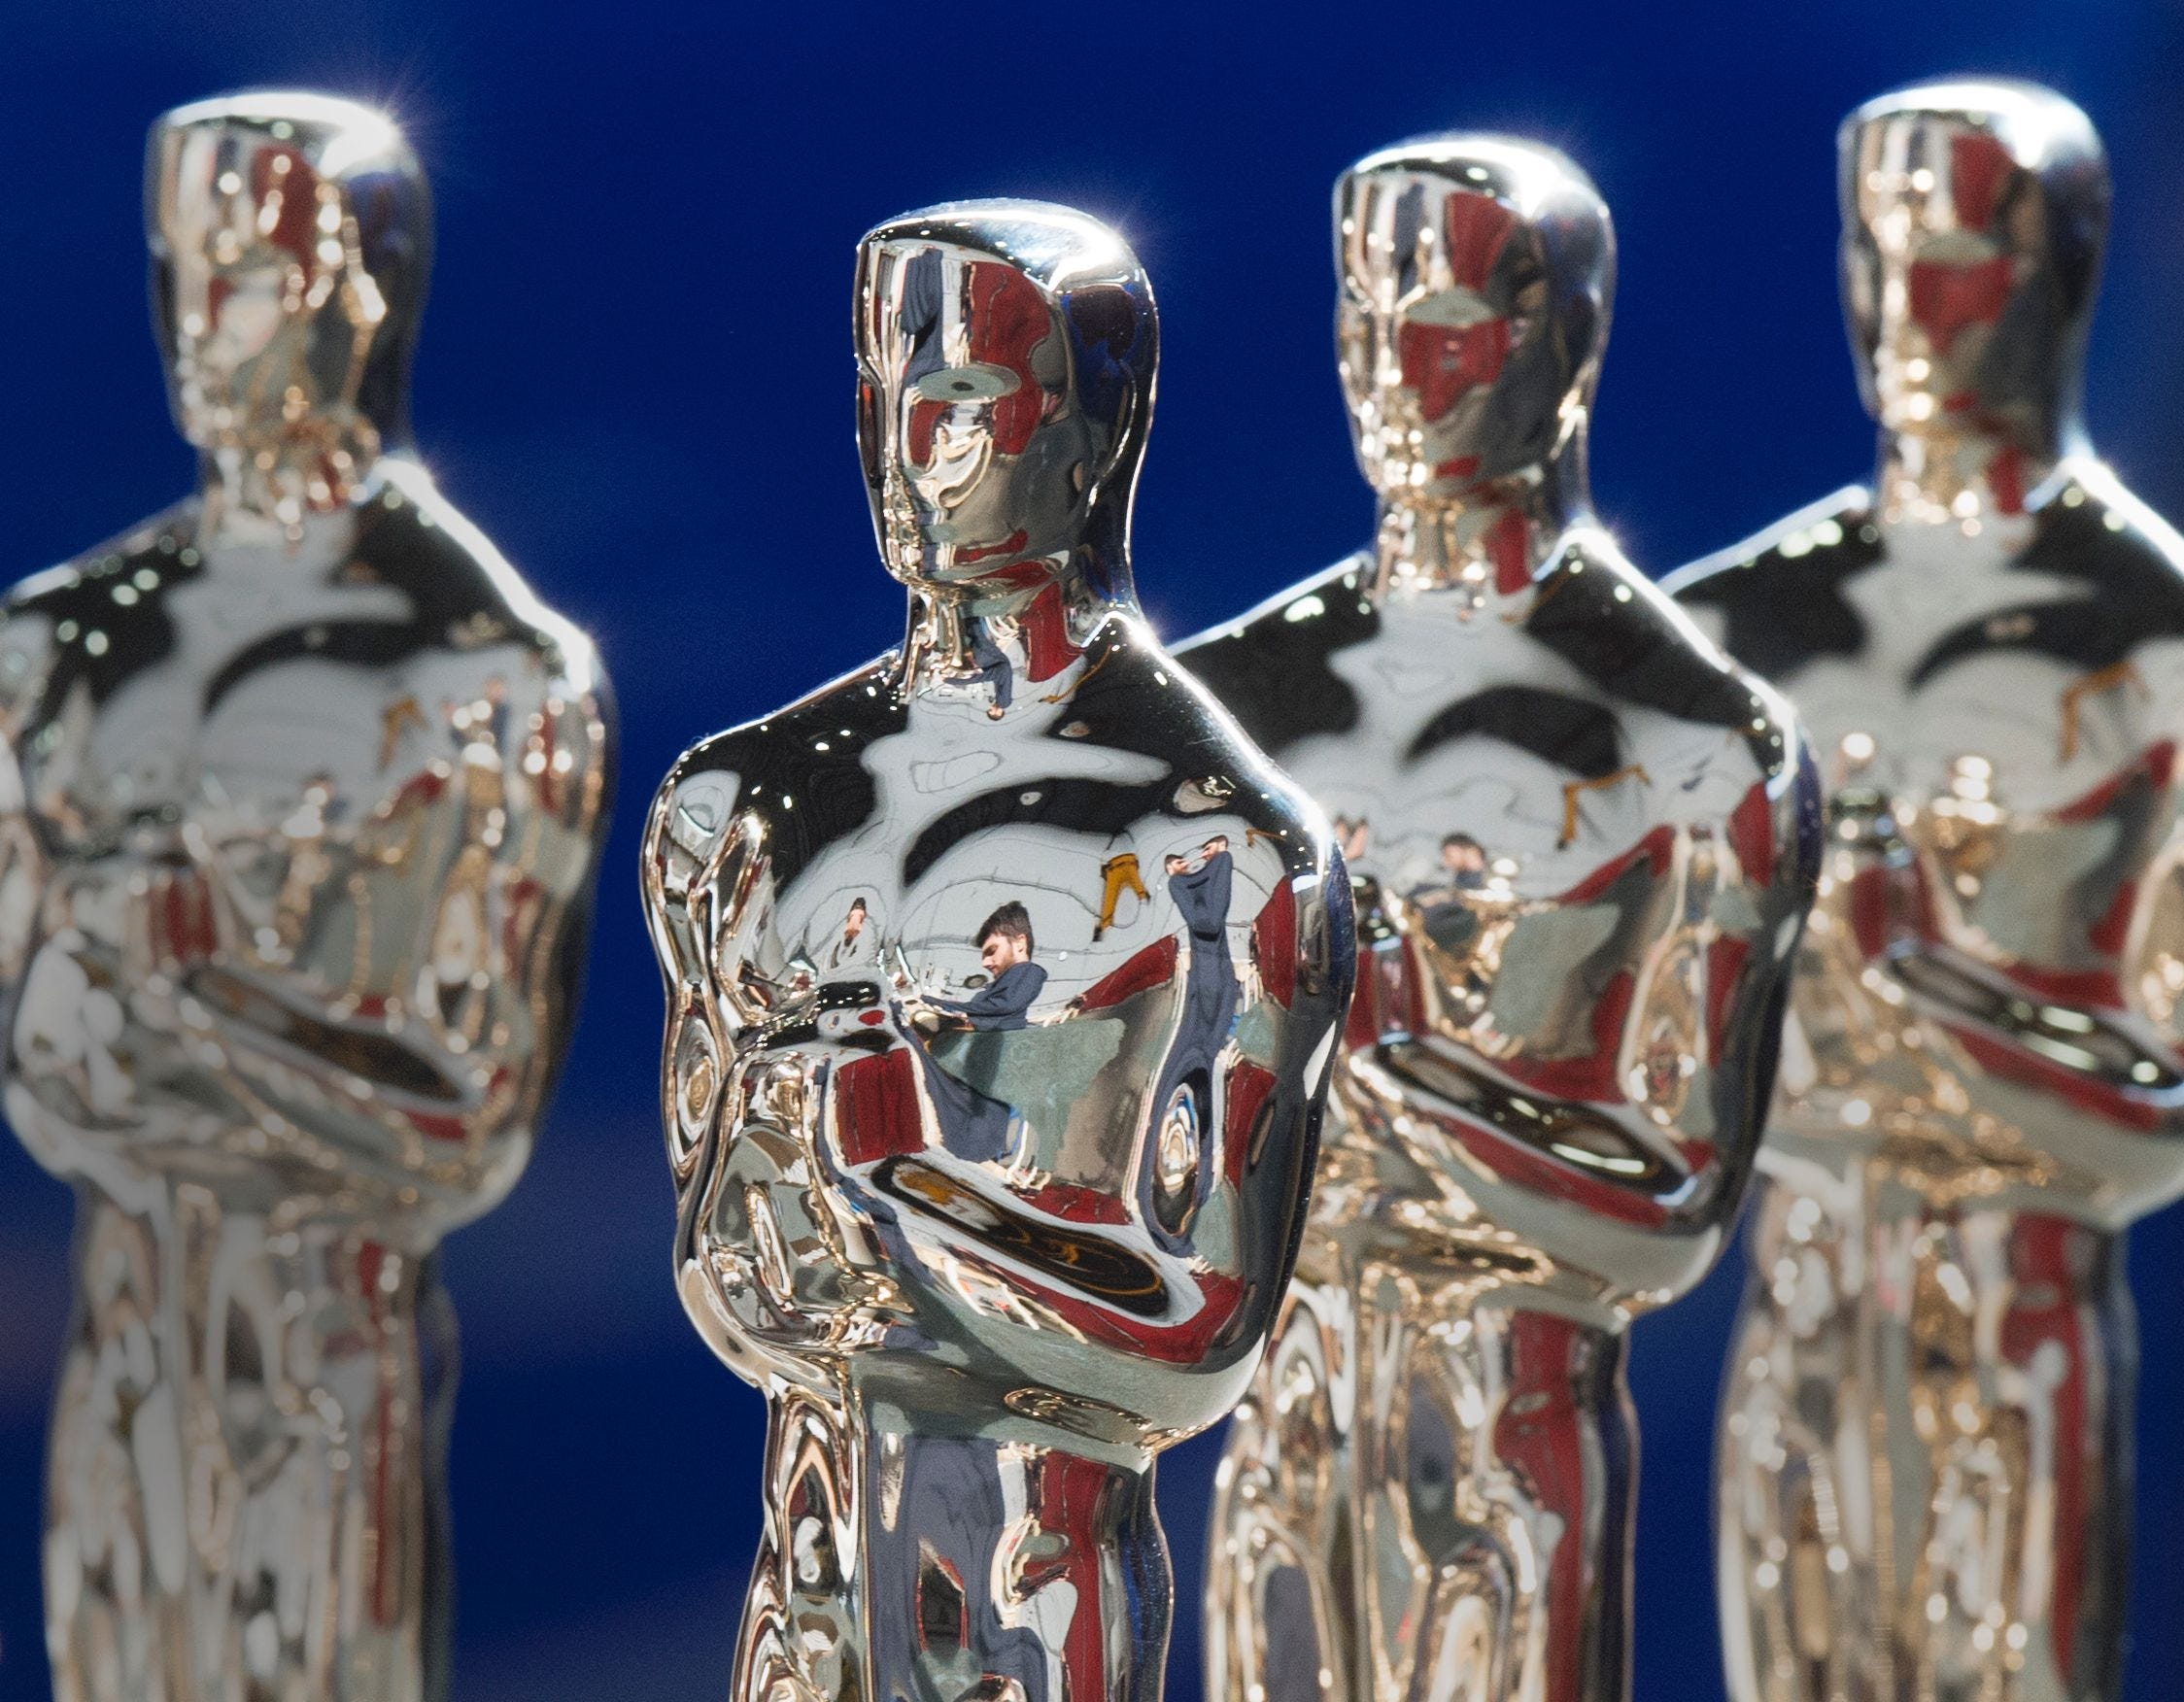 The biggest drama at the Oscars: Which one of these 5 movies will win best picture?